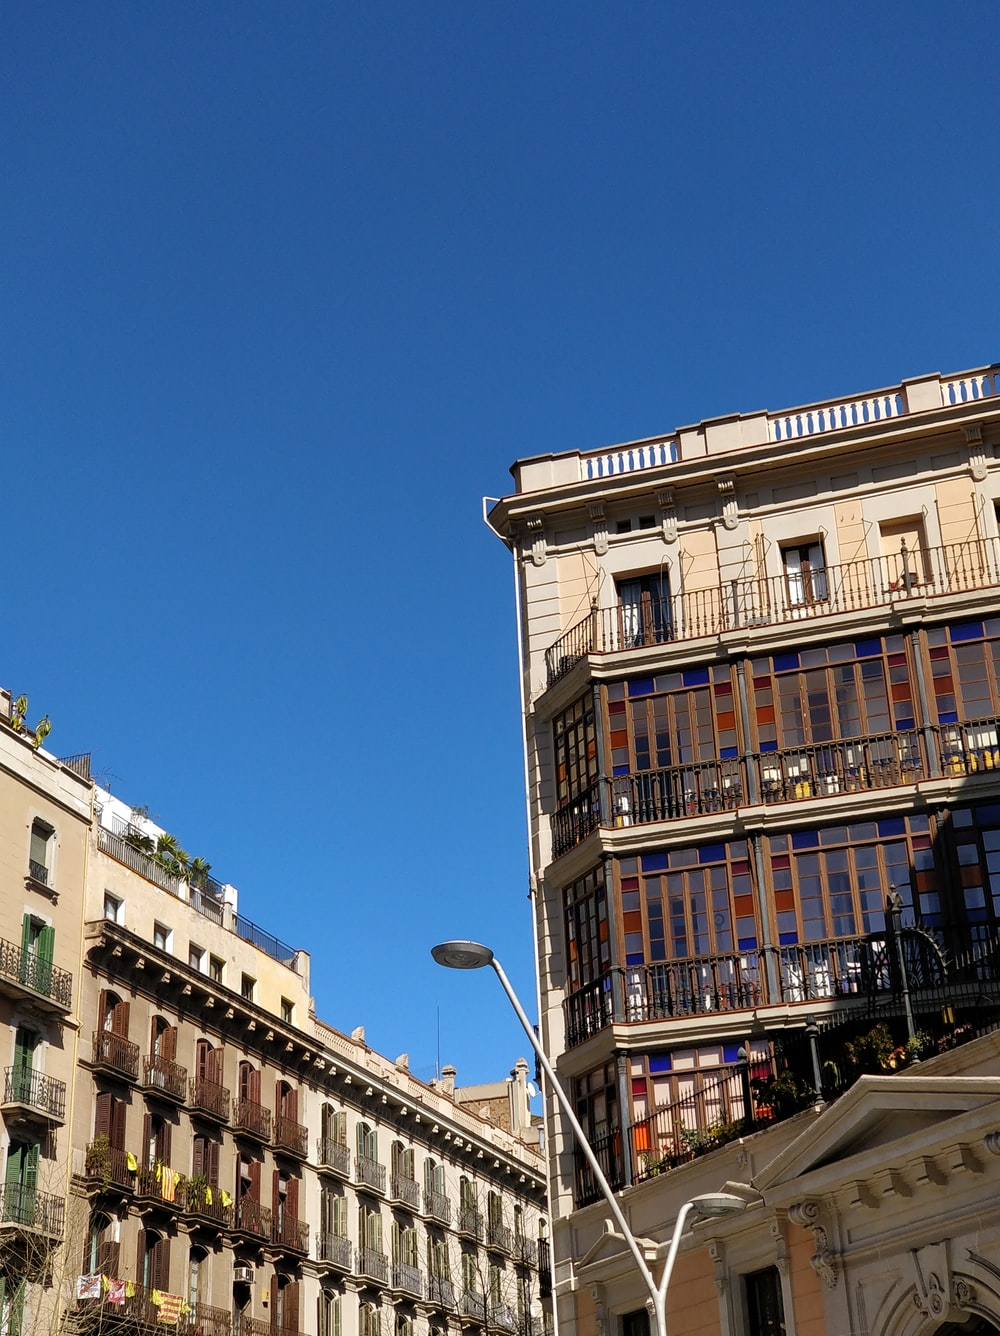 two high rise buildings under blue sky